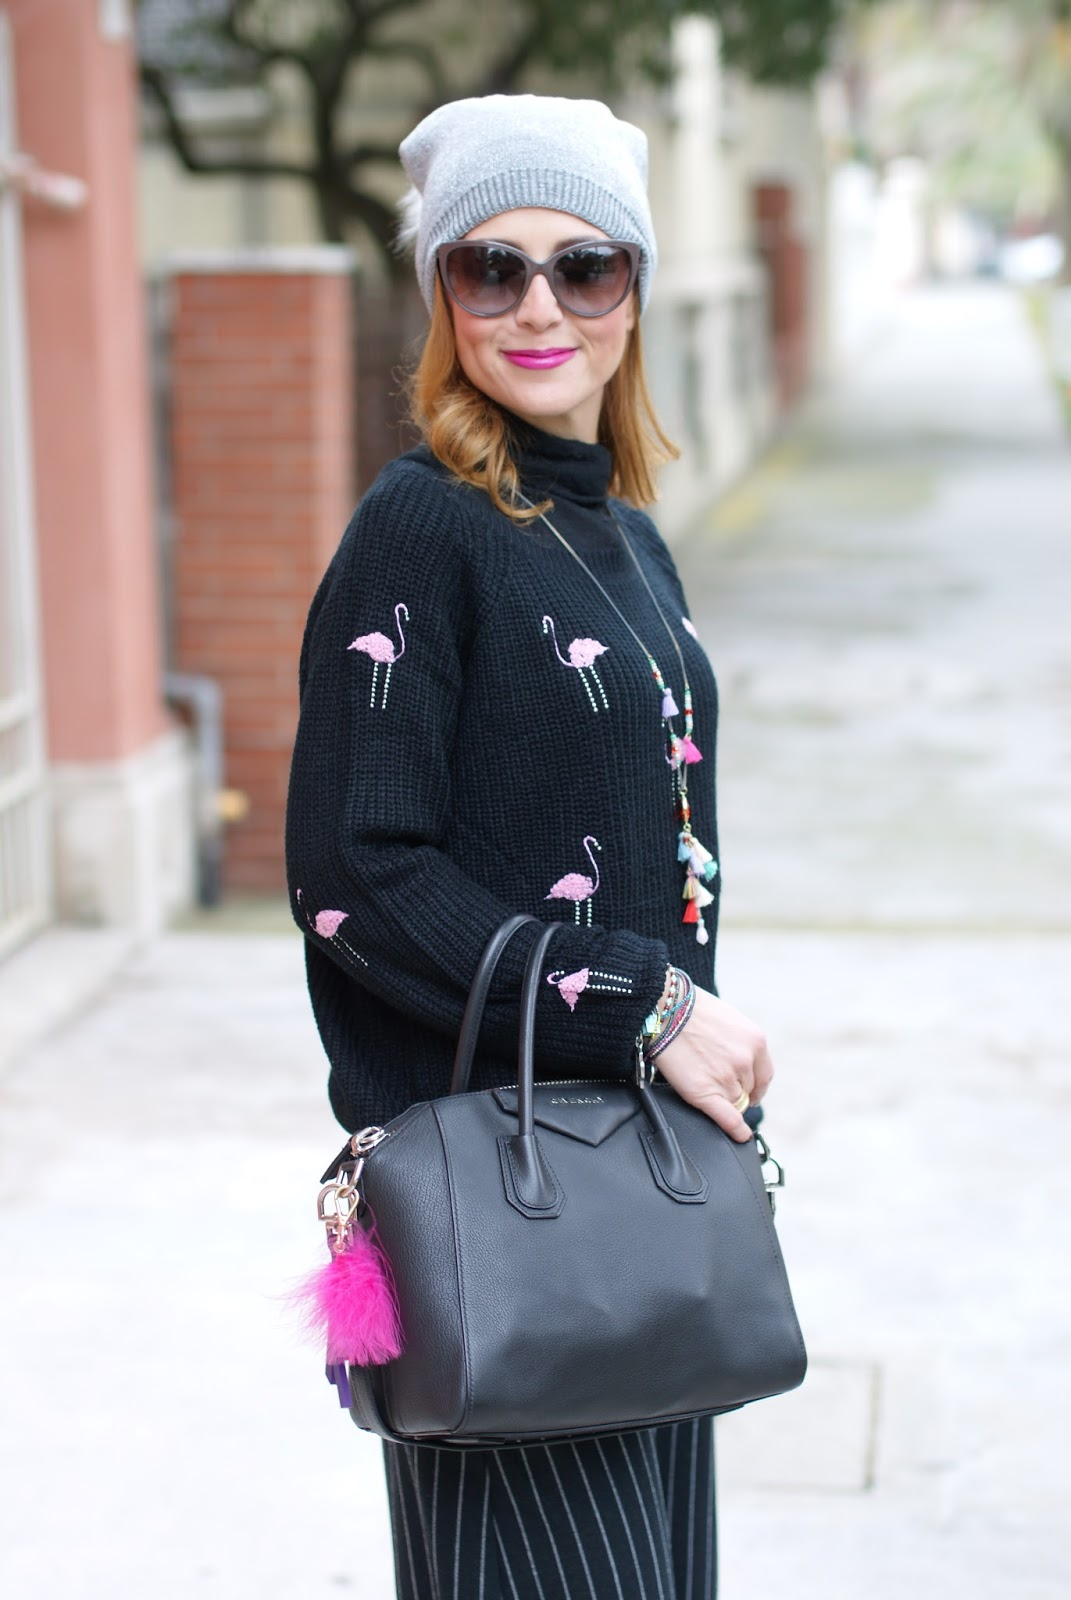 Flamingo sweater, Givenchy bag and slip on sequin sneakers, casual feminine outfit on Fashion and Cookies fashion blog, fashion blogger style